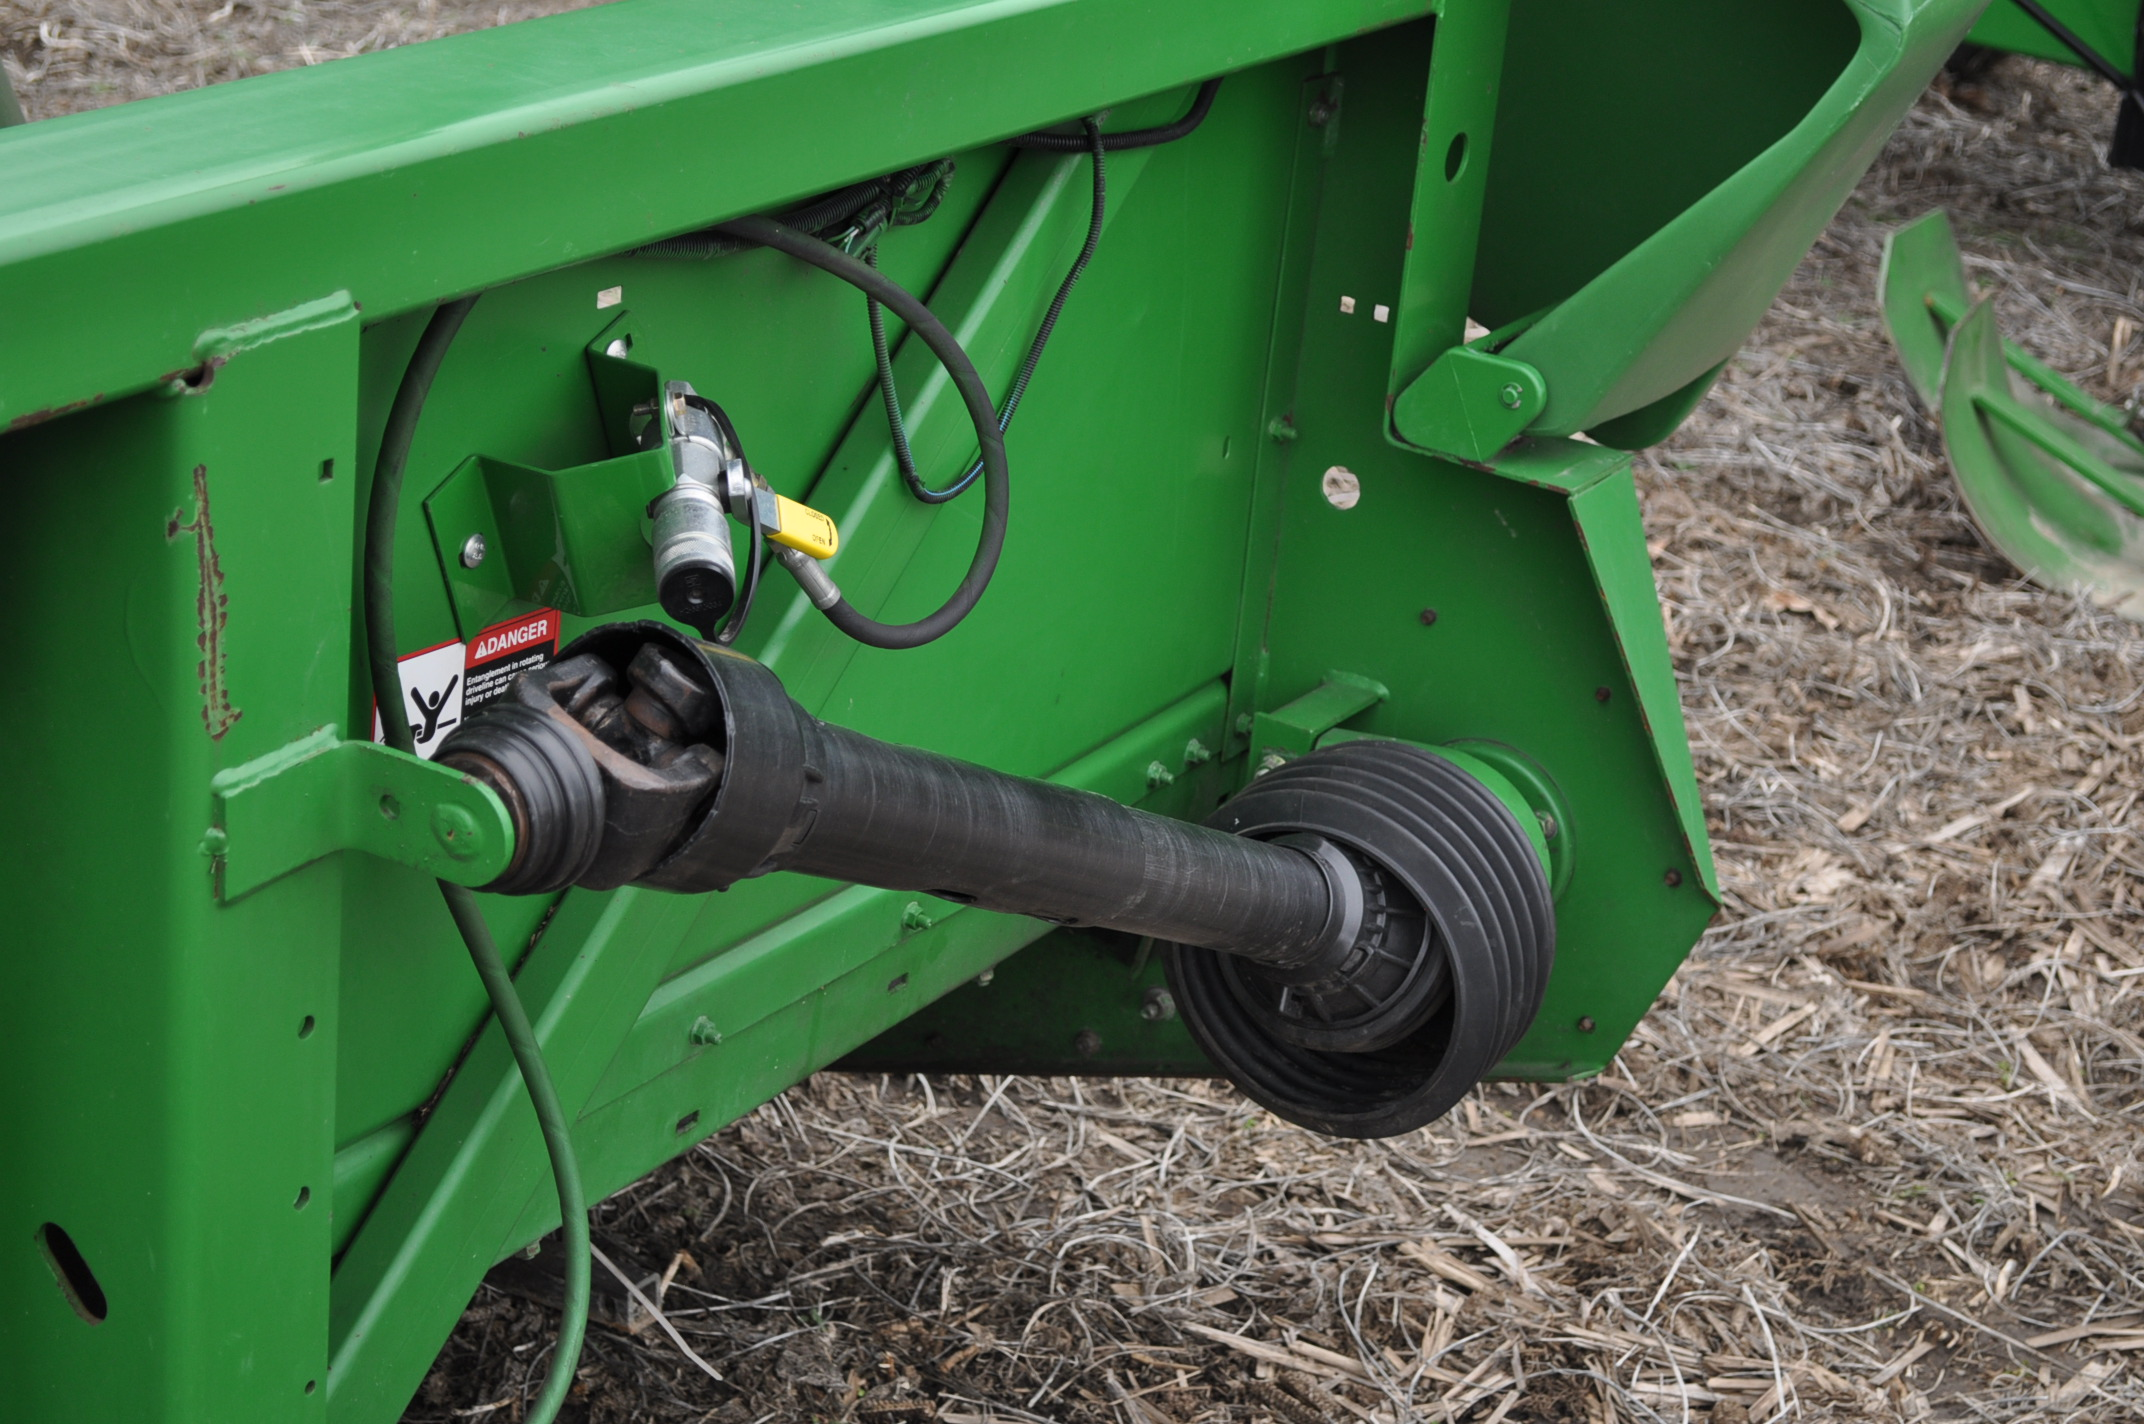 John Deere 693 corn head, poly, fluted rolls, hyd deck plates, pto shafts, SN 710815 - Image 13 of 14